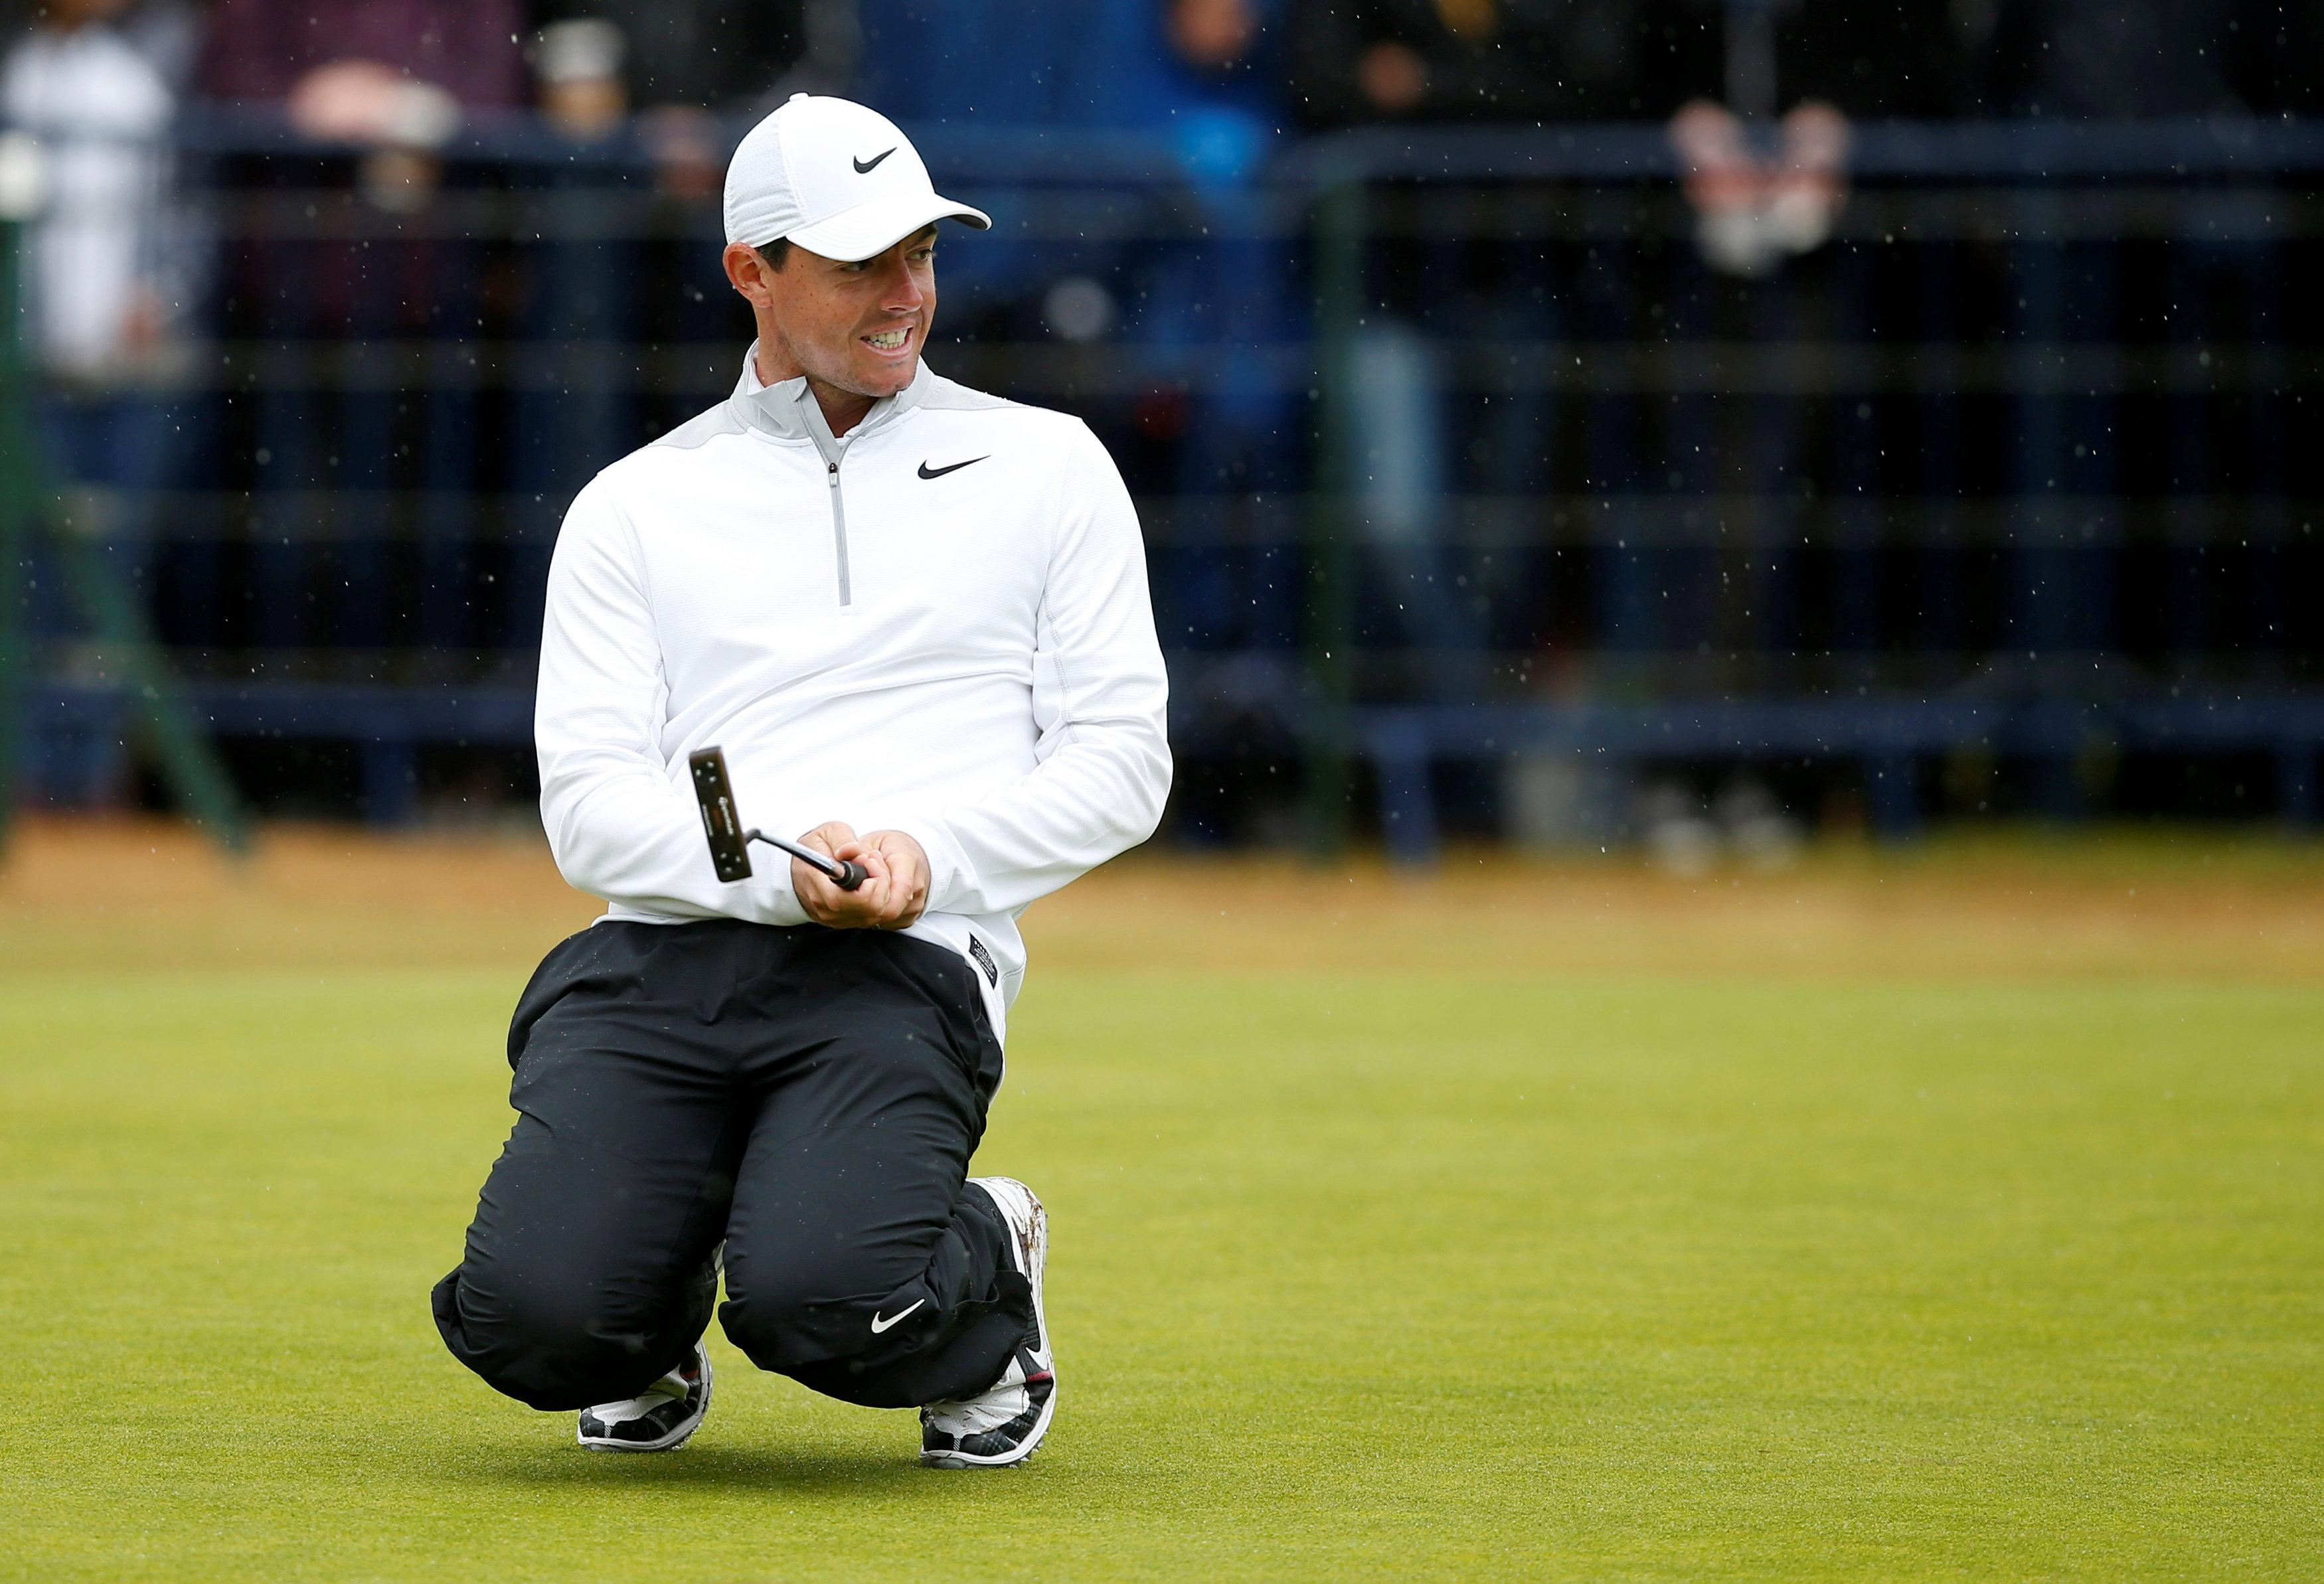 Northern Ireland superstar Rory McIlroy is the second-best placed Brit, with England ace Tommy Fleetwood above him on minus five